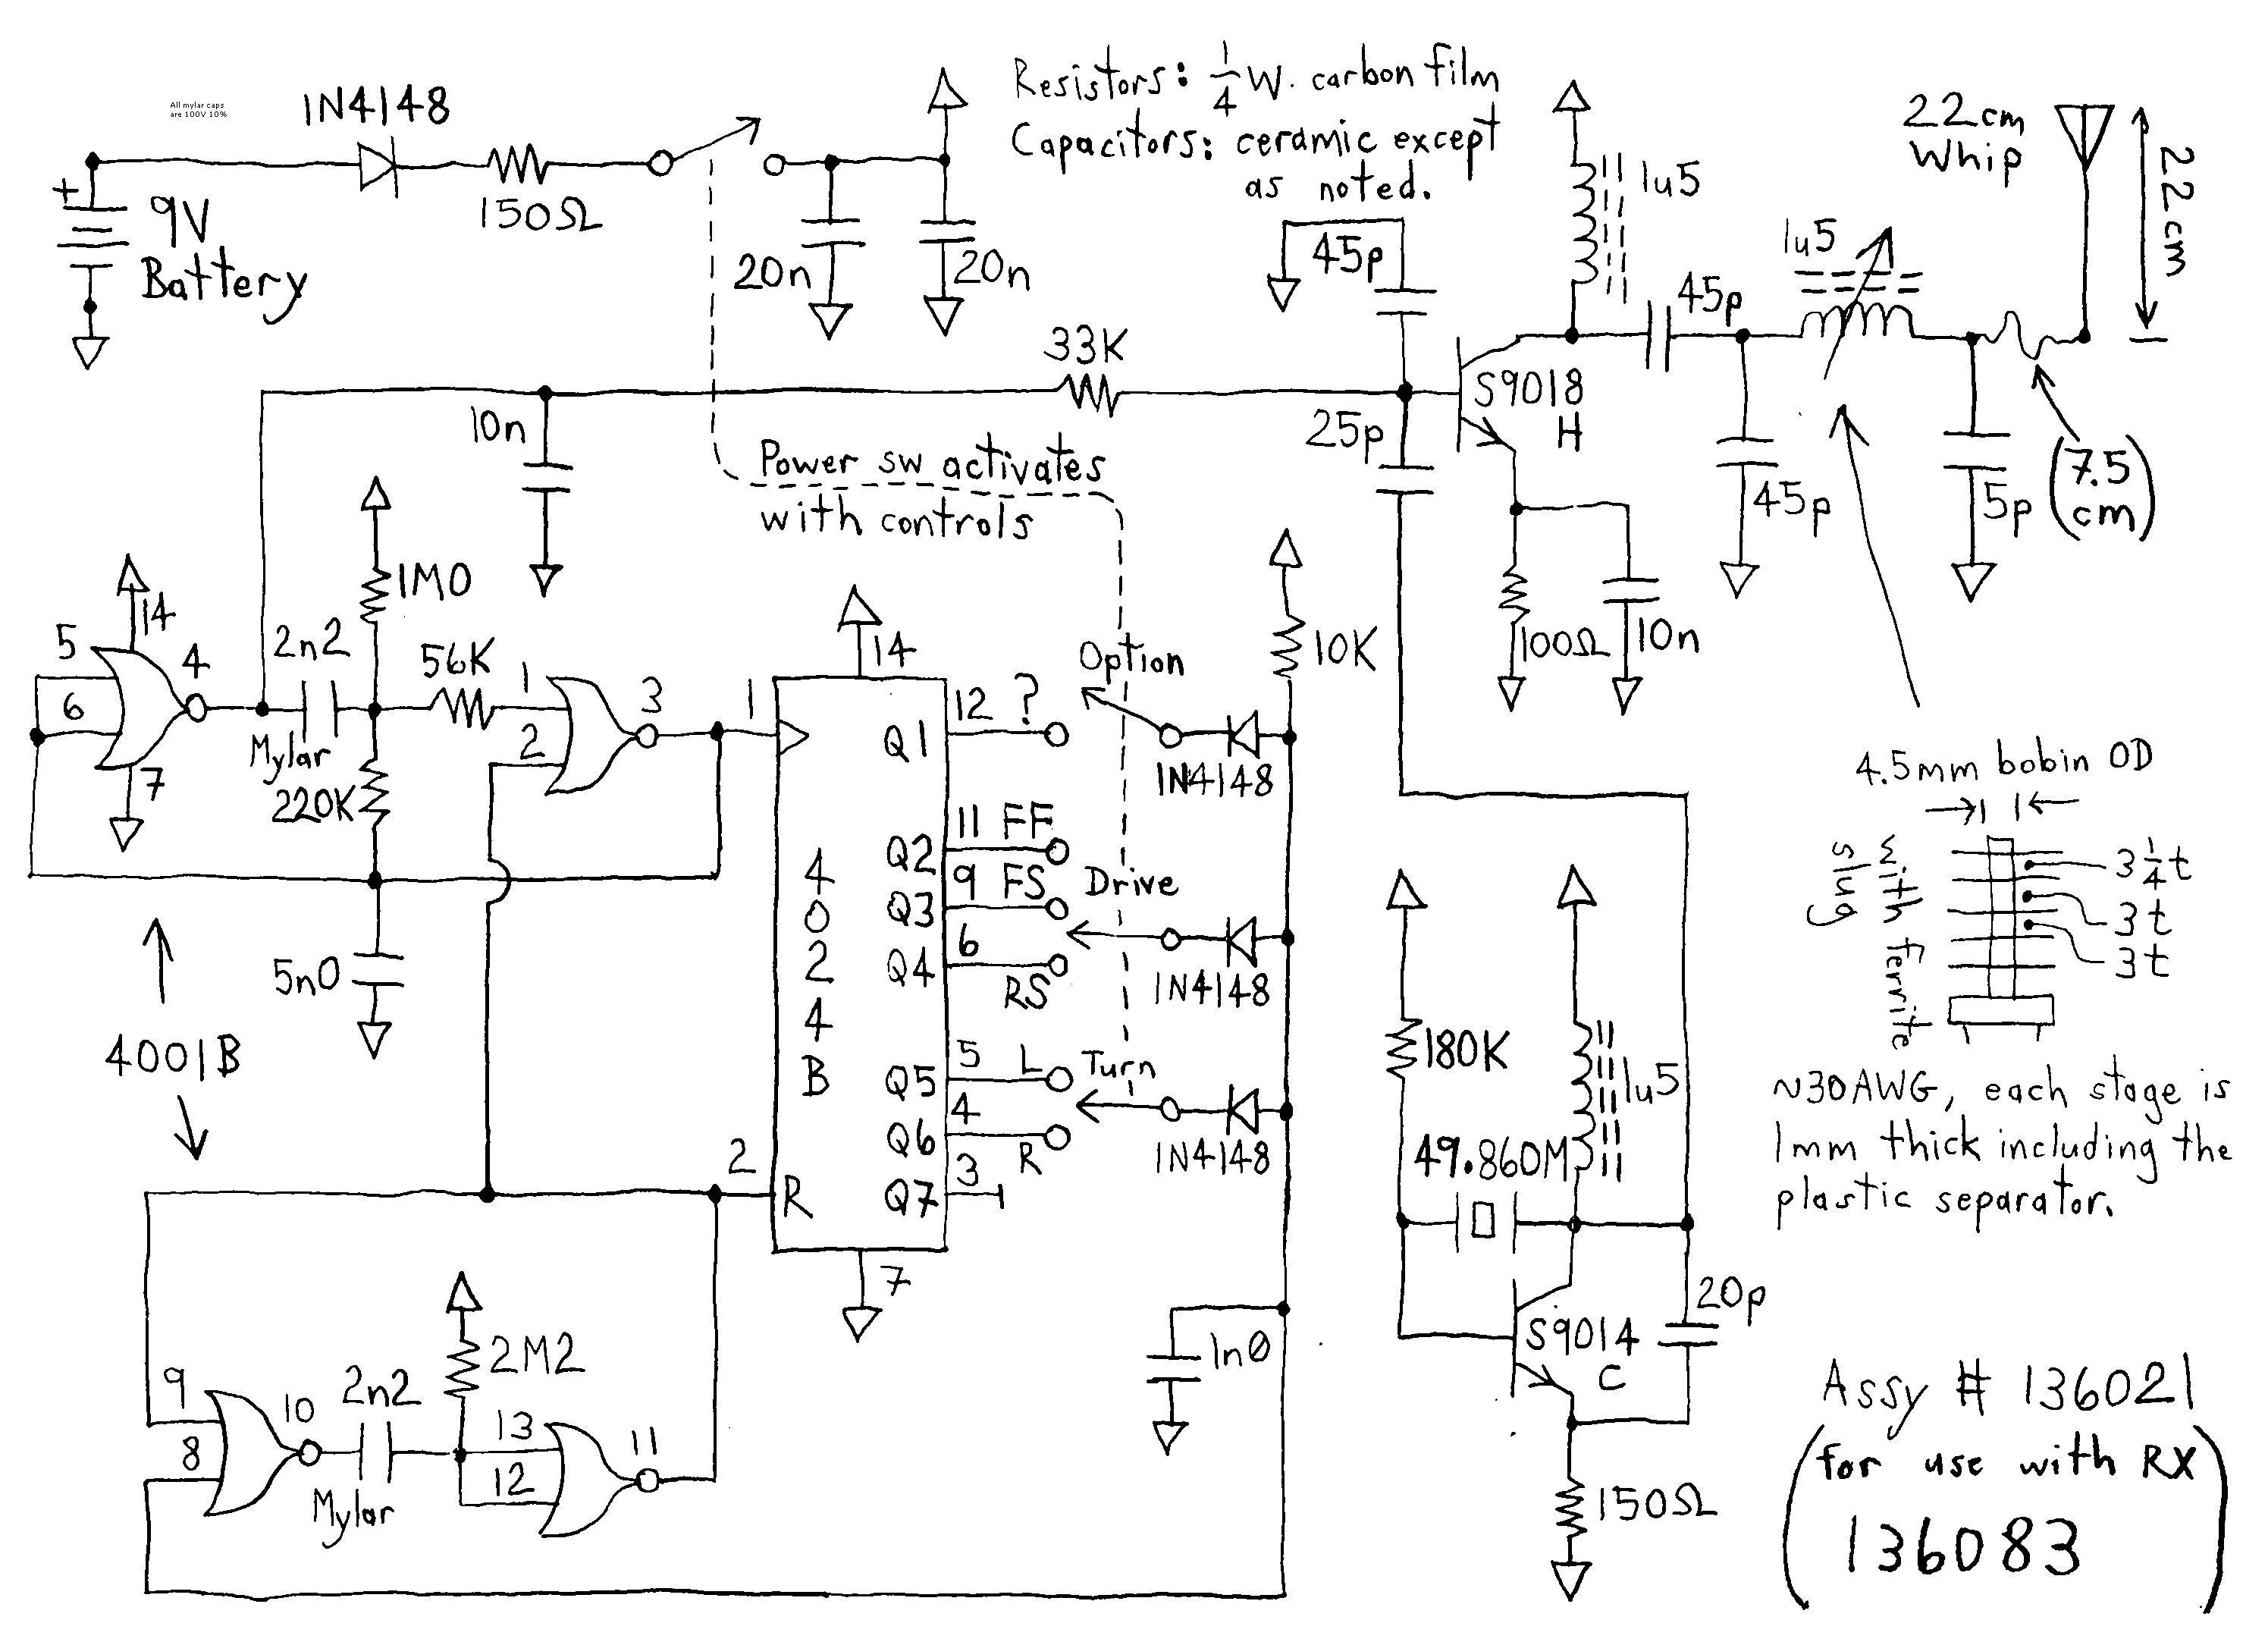 Fuel Line Diagram Chevy Truck E46 Fuel System Diagram Layout Wiring Diagrams • Of Fuel Line Diagram Chevy Truck